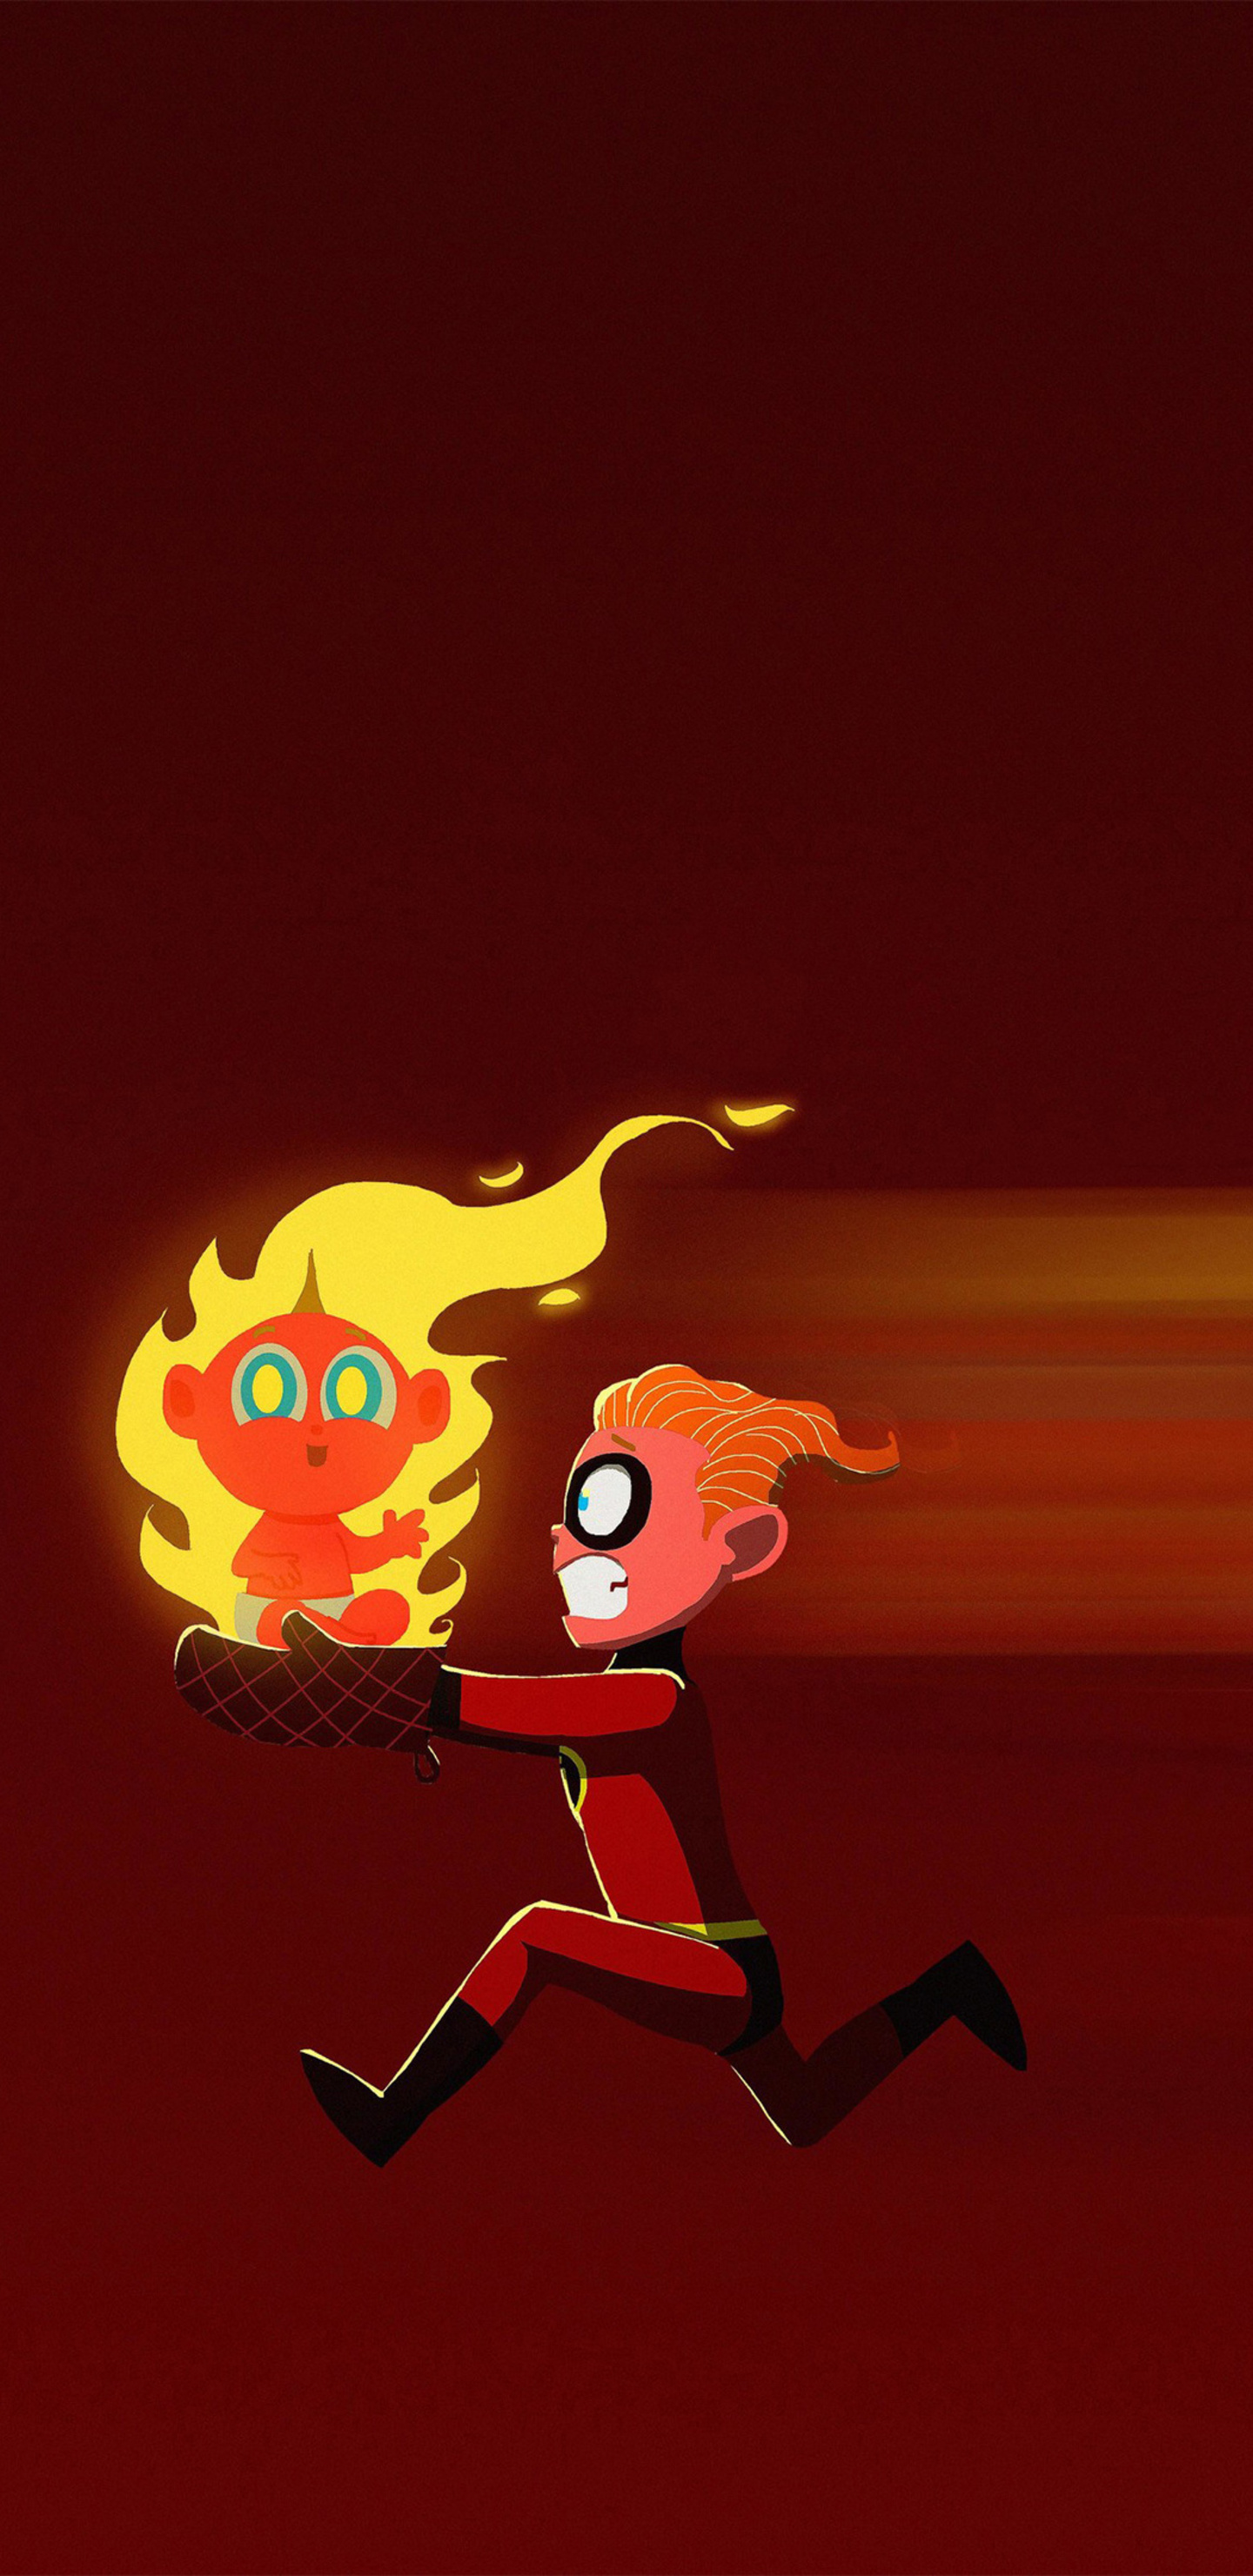 jack-jack-parr-and-dash-in-the-incredibles-2-artwork-5p.jpg